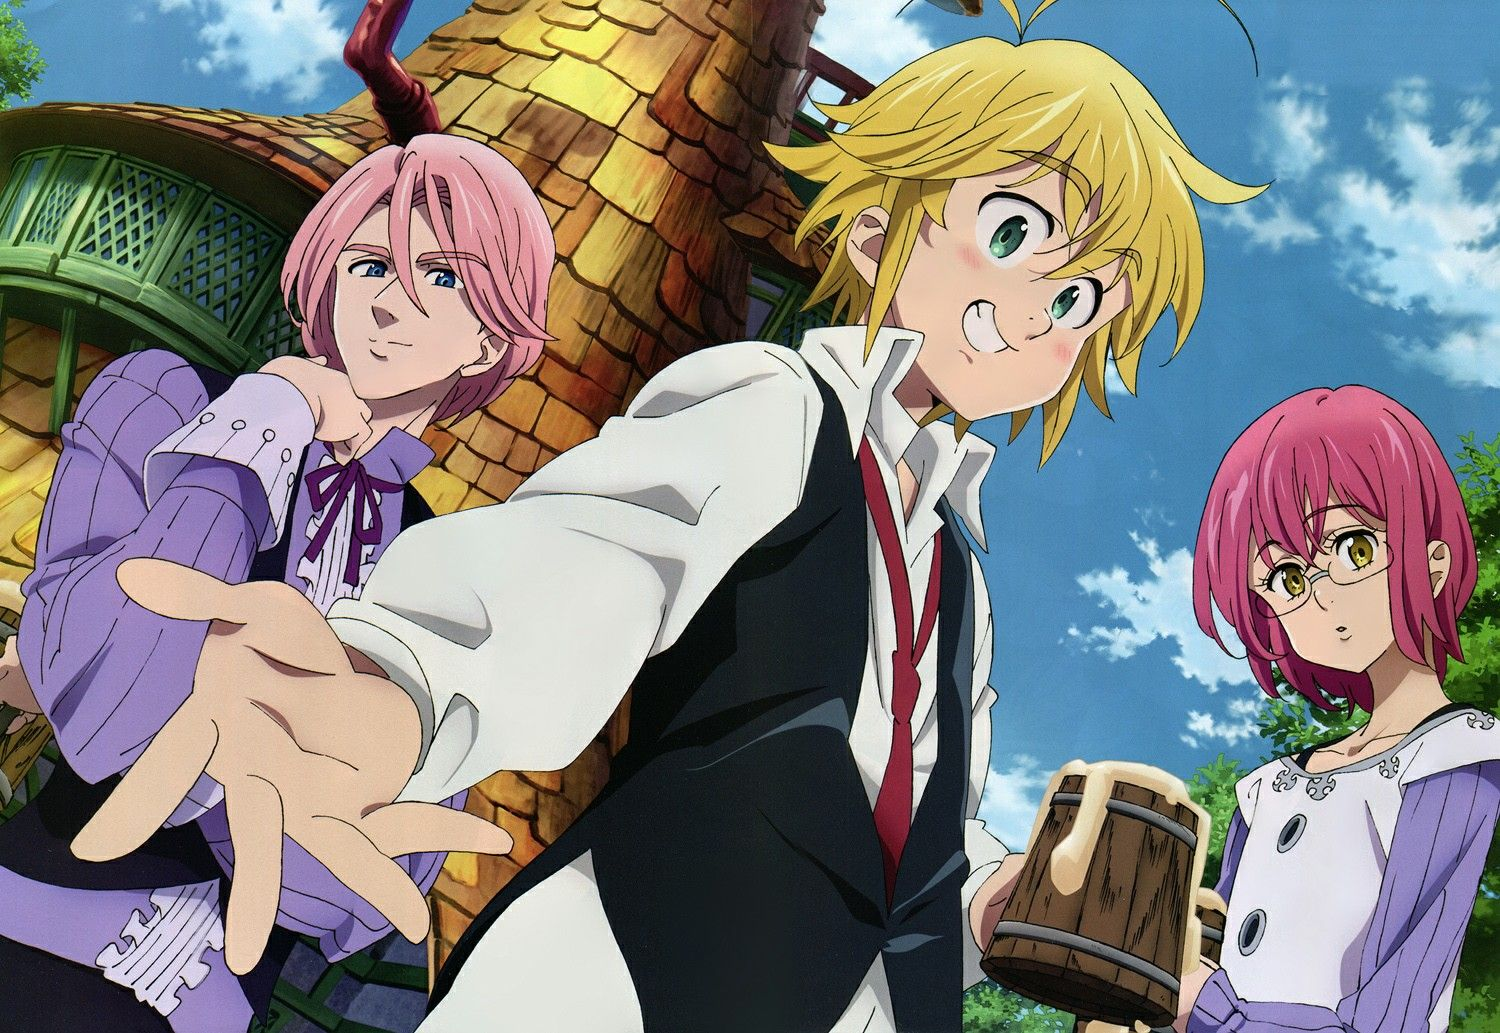 Pin By Leticia Manriquez On Anime Seven Deadly Sins Anime Seven